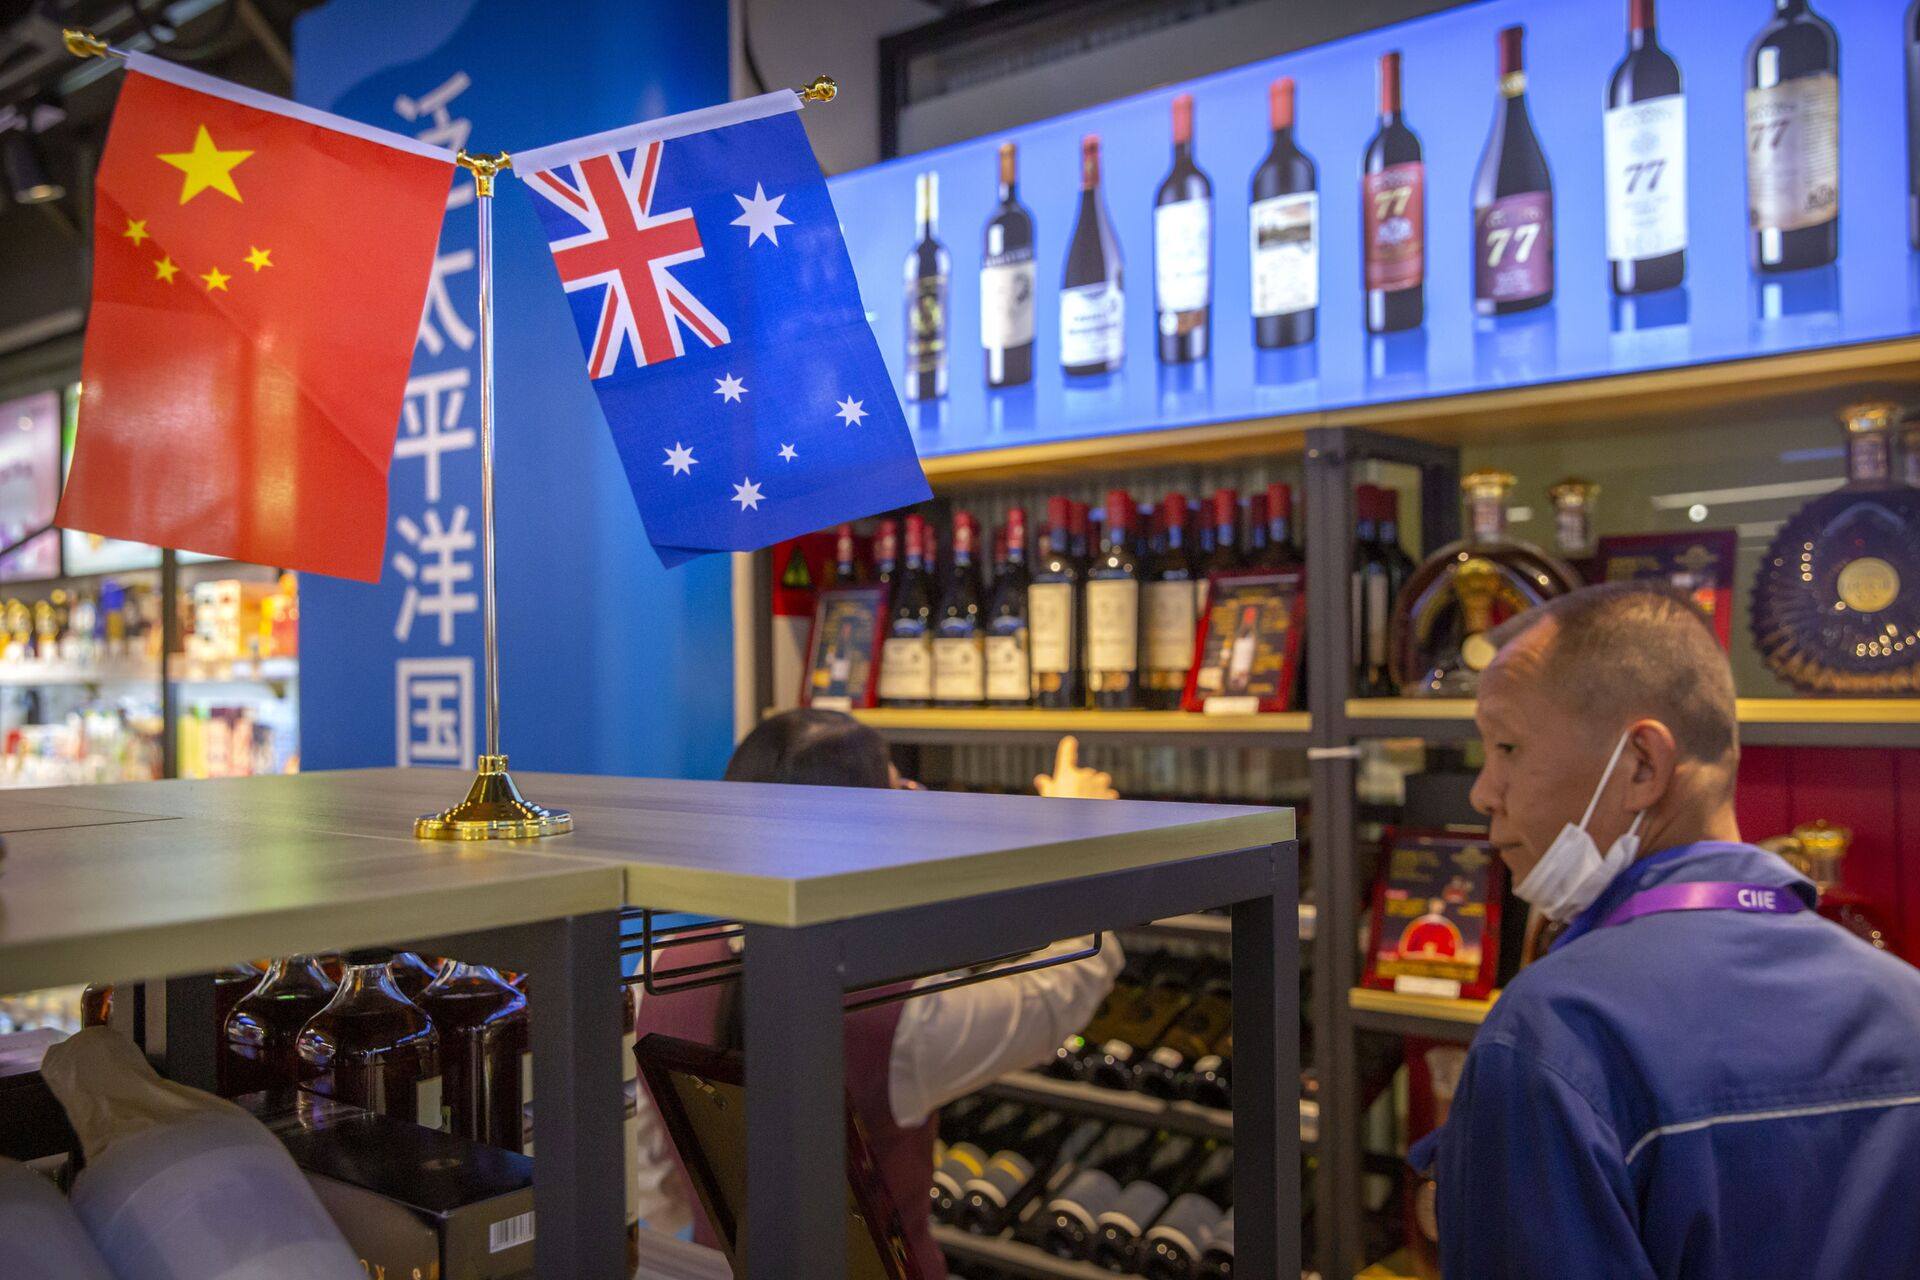 A visitor wearing a face mask to protect against the coronavirus looks at a display of Australian wines at the China International Import Expo (CIIE) in Shanghai on Nov. 5, 2020. China is raising import taxes on Australian wine, stepping up pressure on Australia over disputes including its support for a probe into the origin of the coronavirus. - Sputnik International, 1920, 21.09.2021